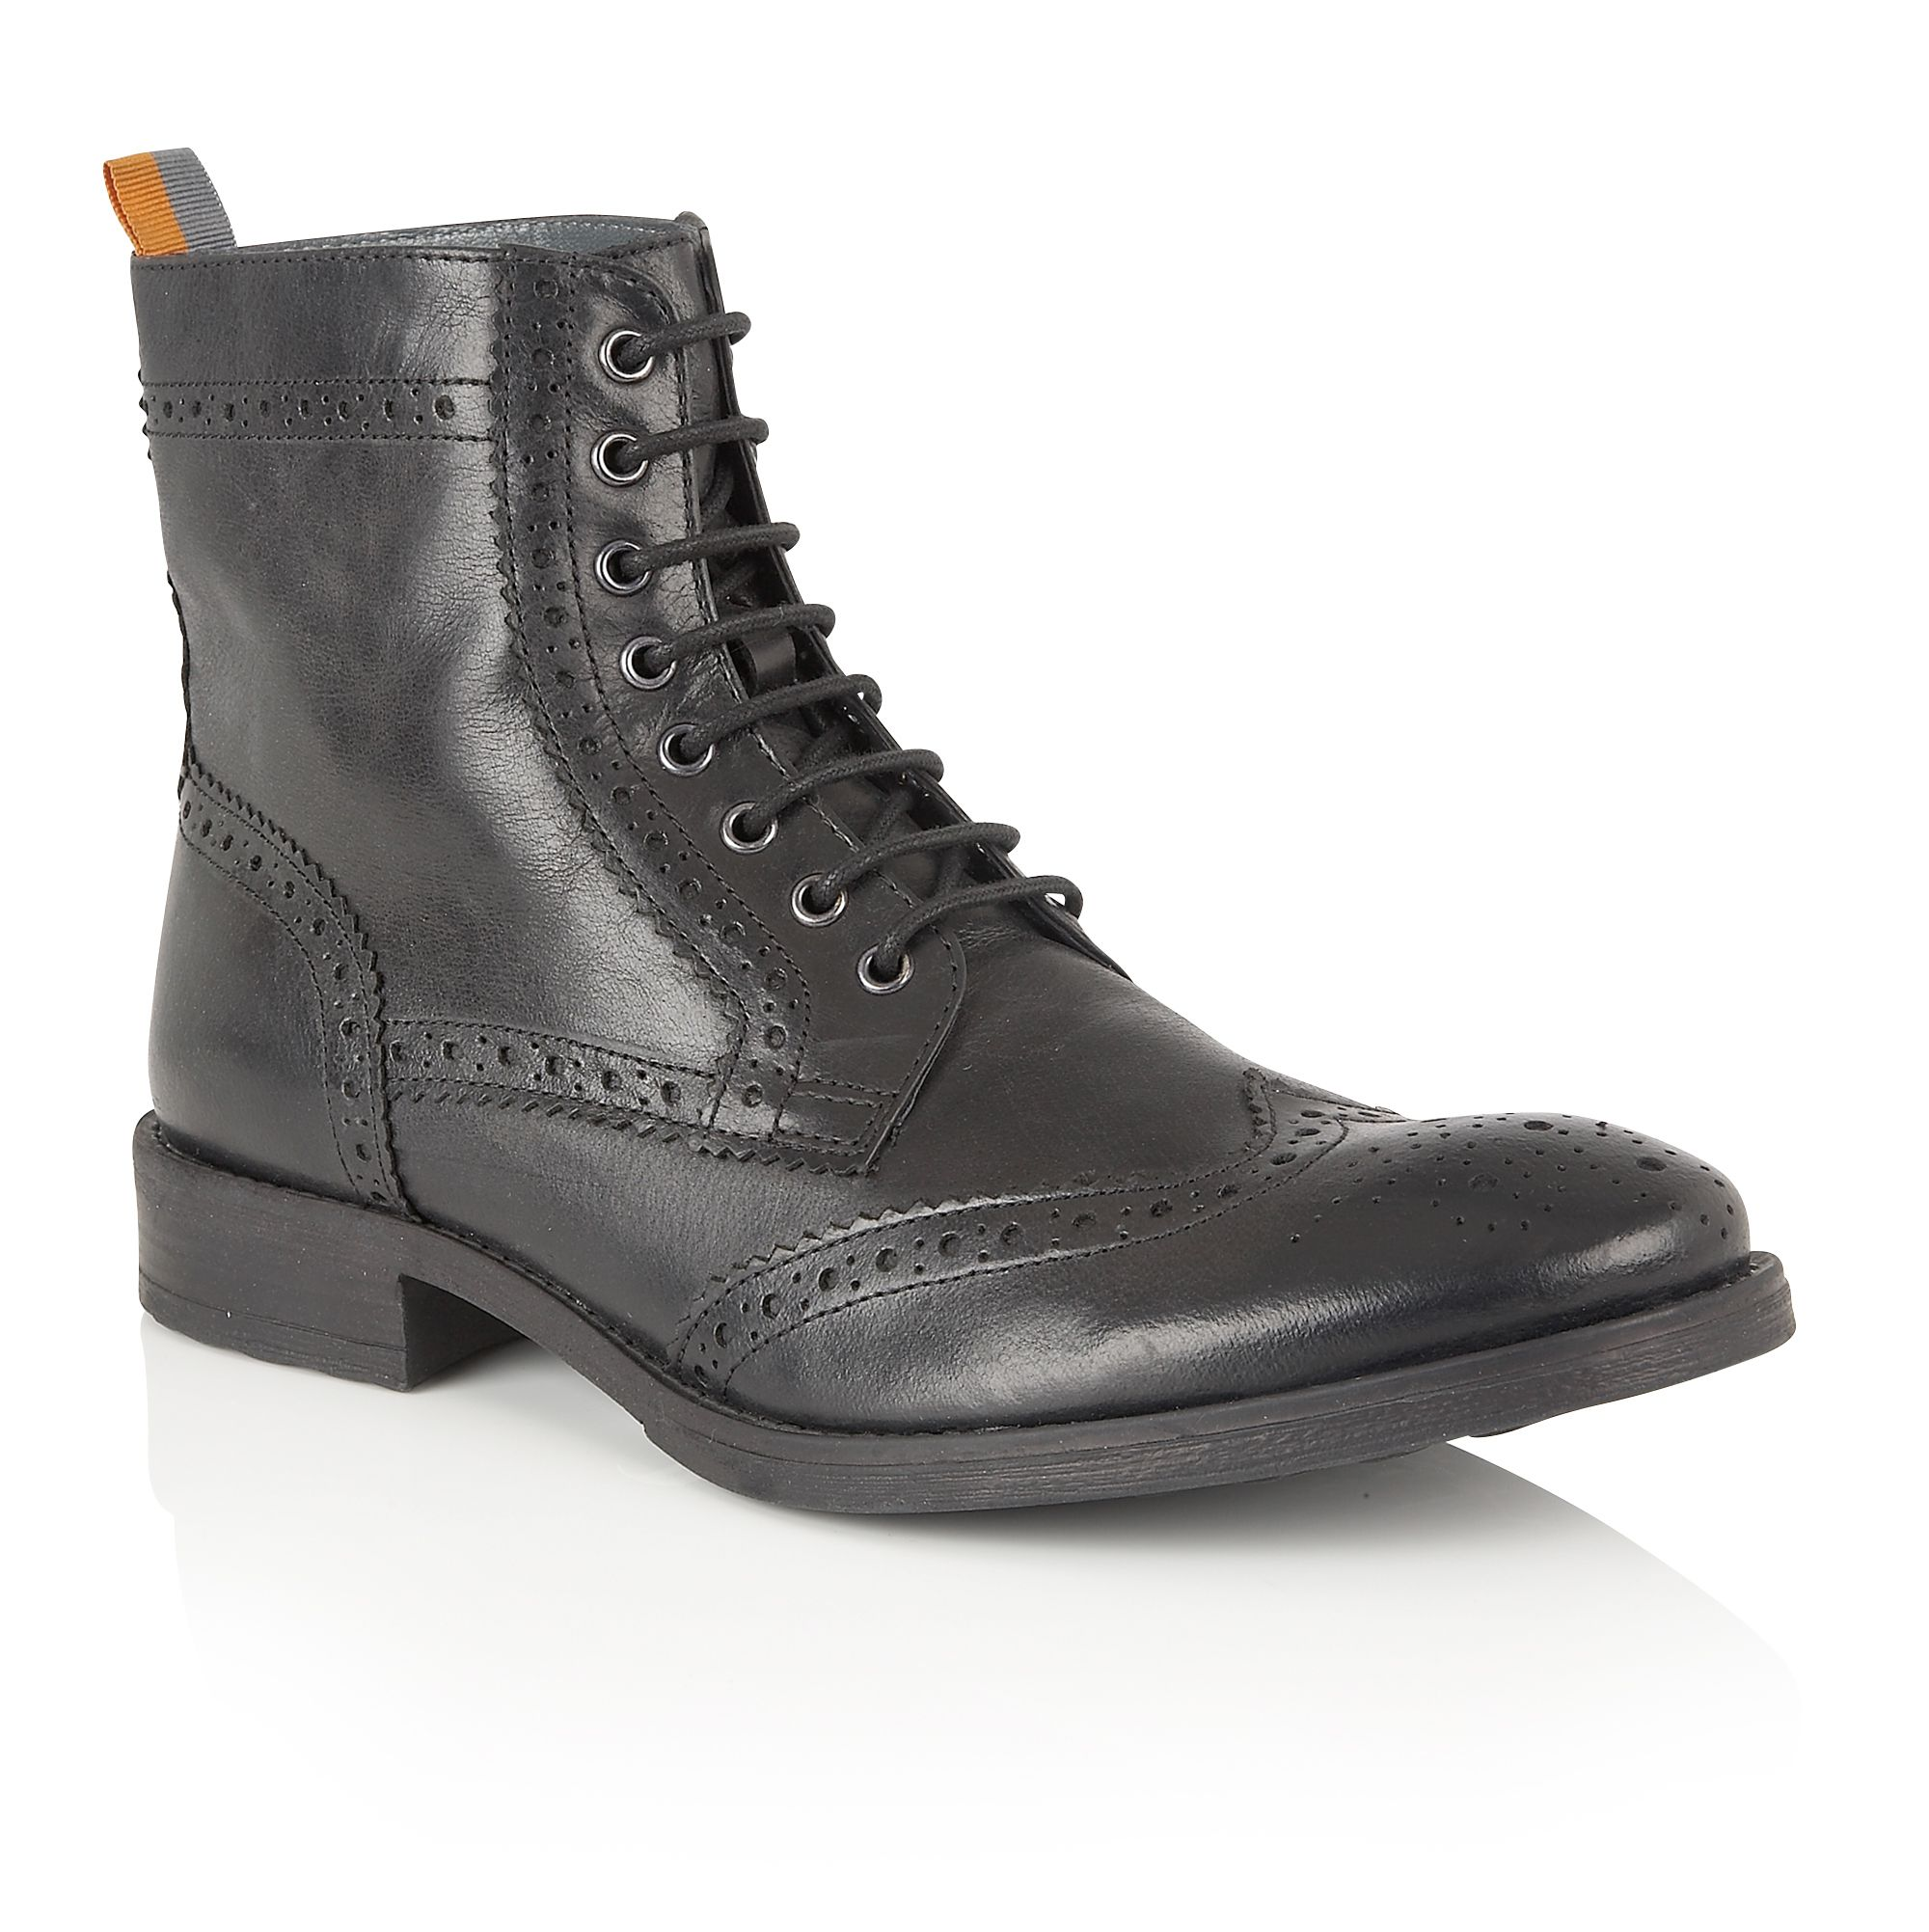 Frank Wright Frank Wright Cypress Mens Boots, Black